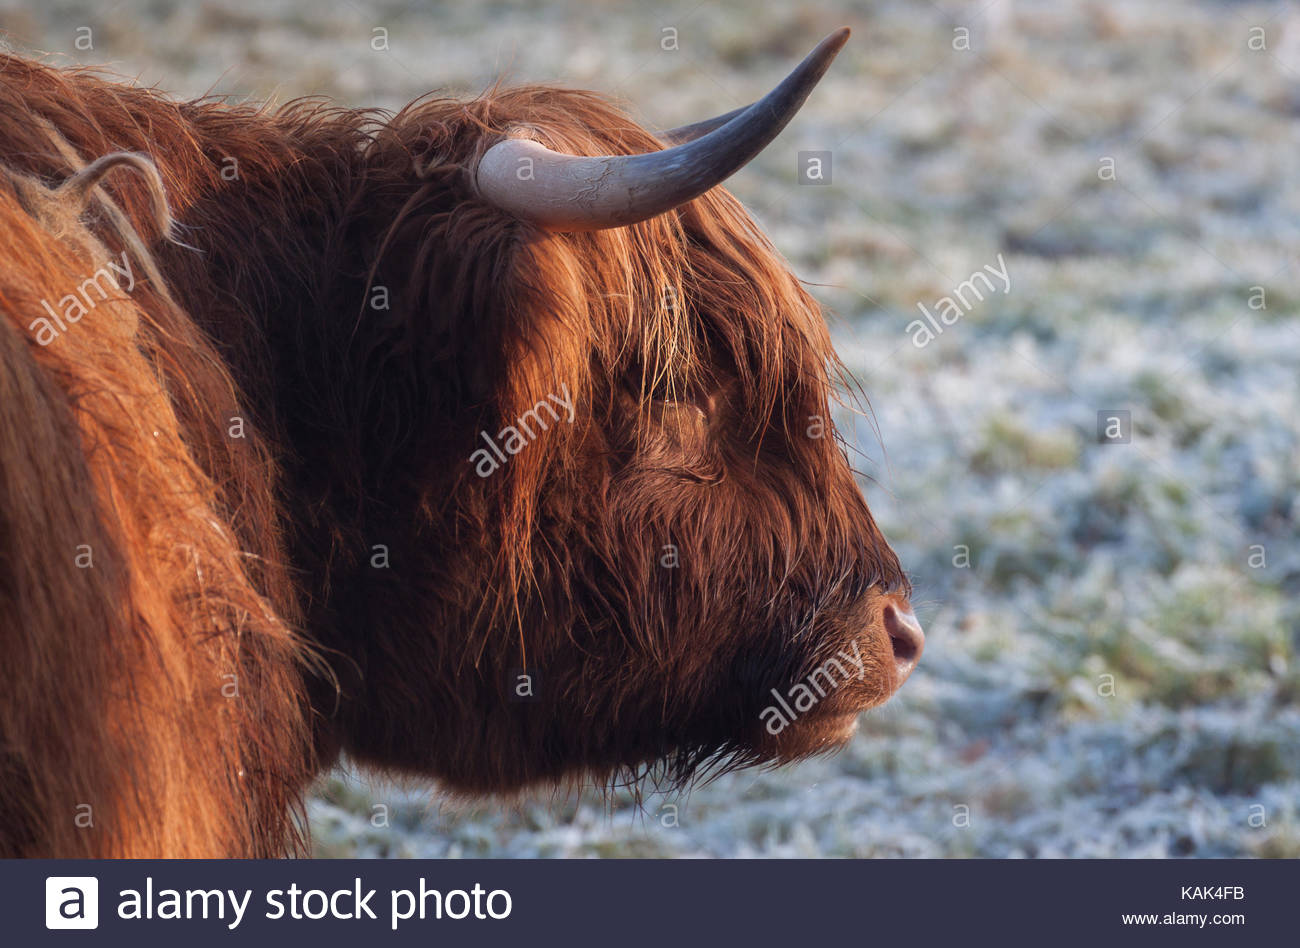 Portrait of a highland cattle with long horns on a snowy field in winter. Stock Photo